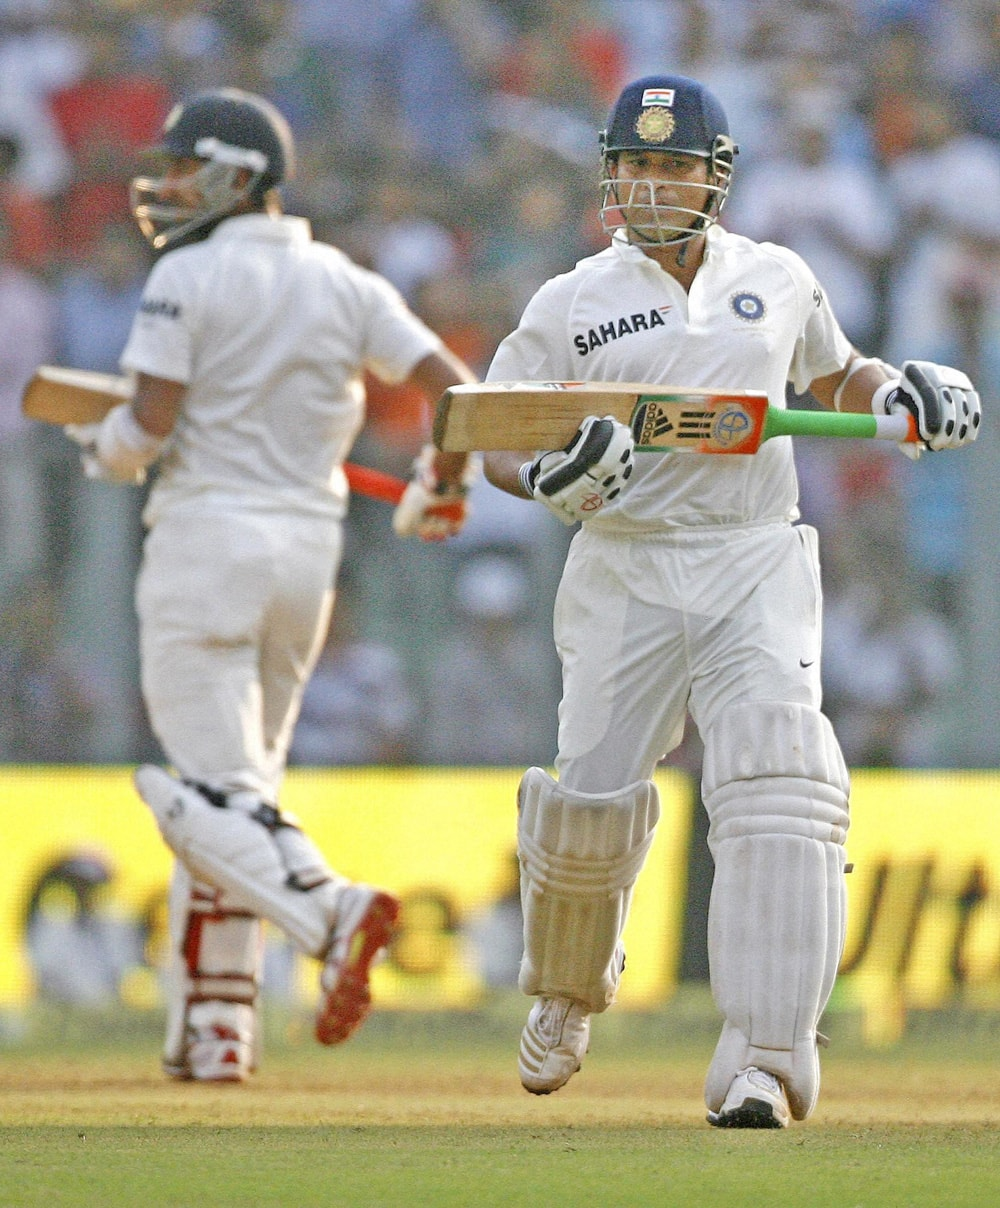 Sachin Tendulkar takes a run on Day 1 of the 2nd test match against West Indies at Wankhede Stadium in Mumbai on Thursday. Sachin is playing his last 200th Test match.